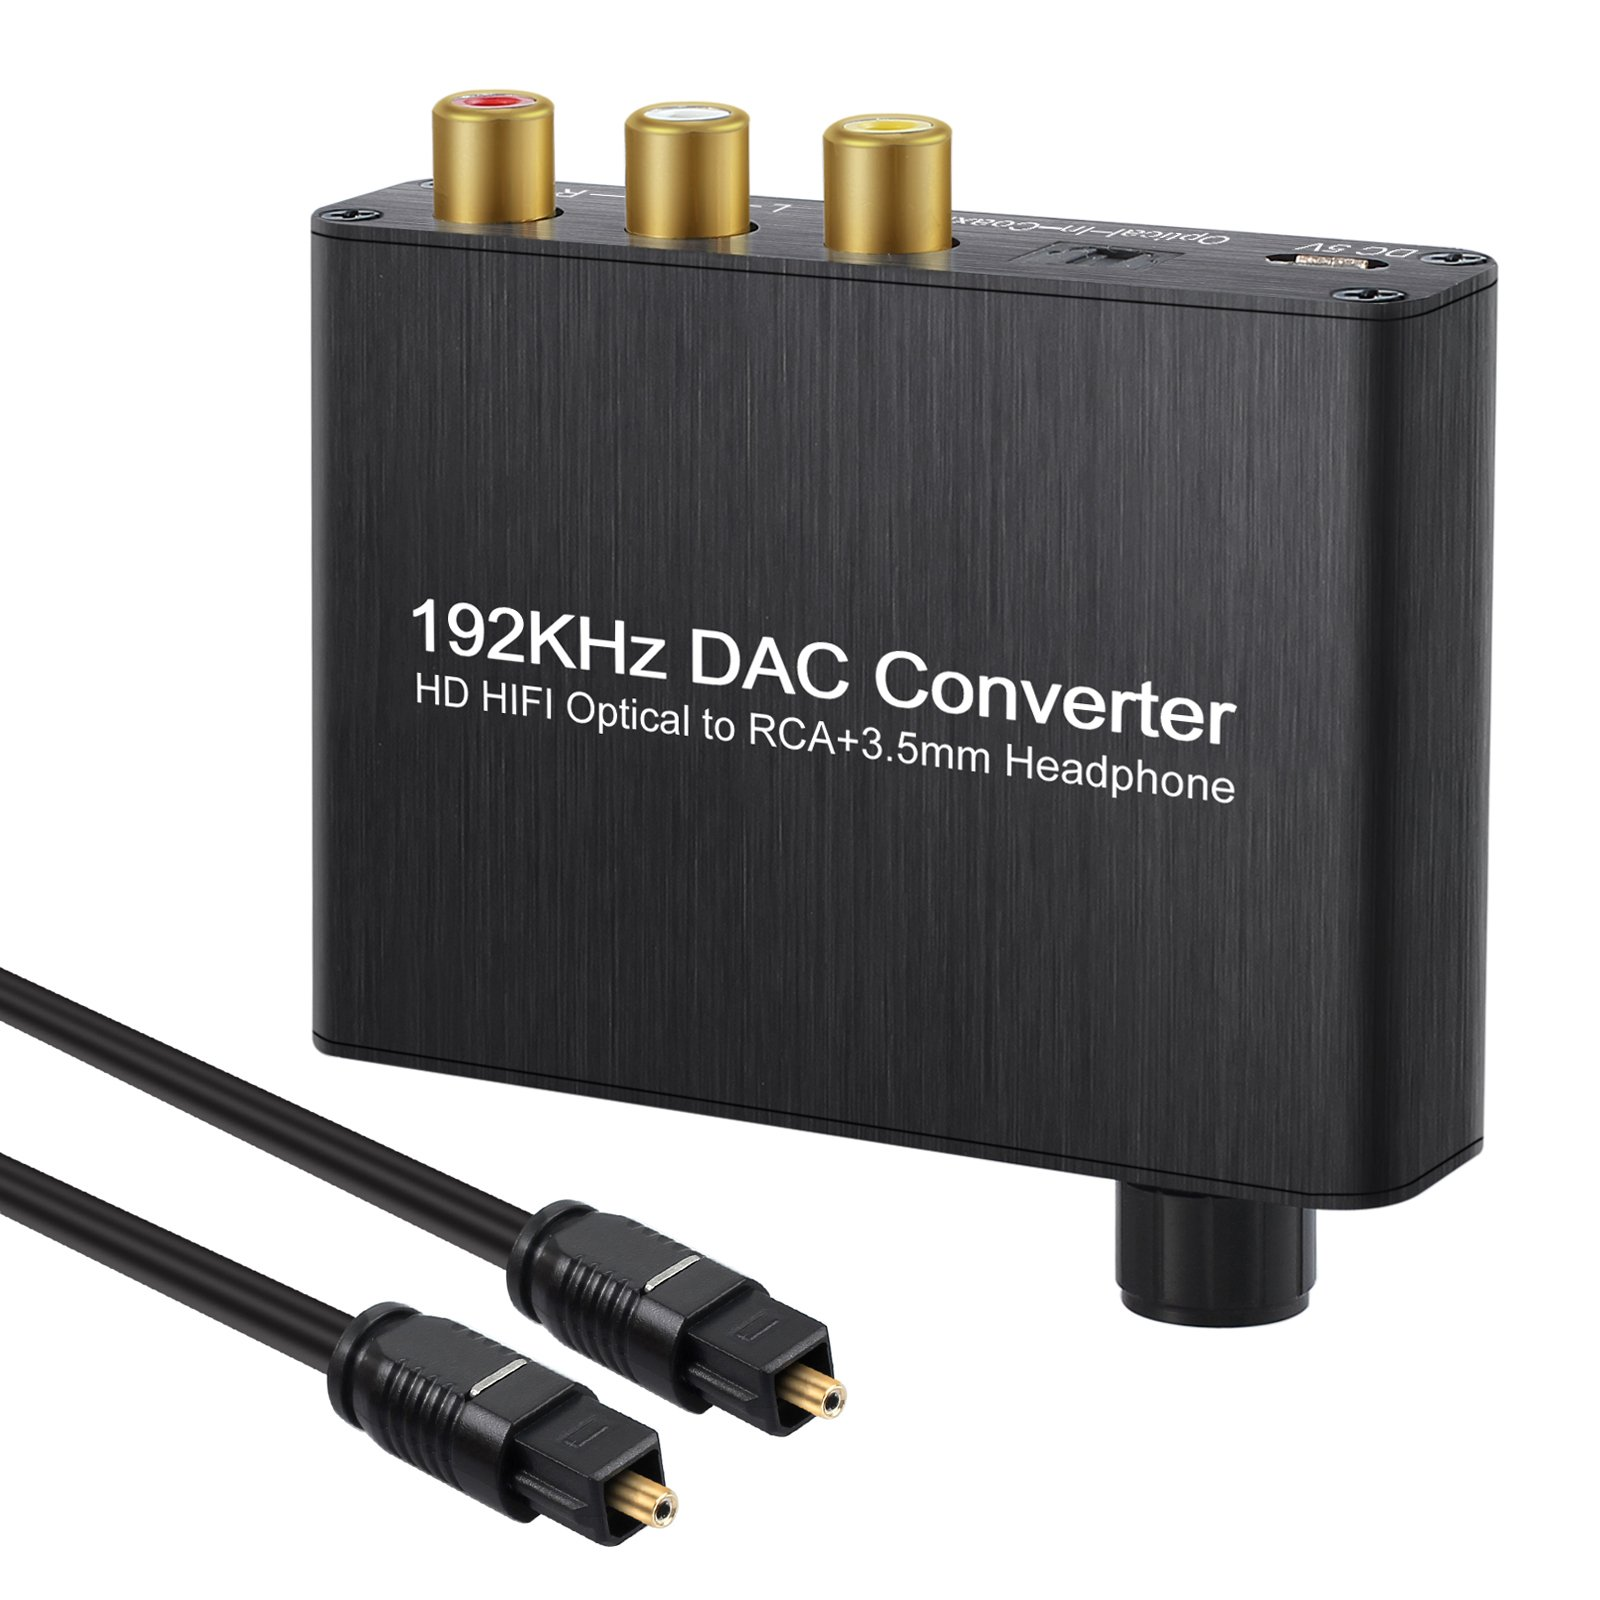 Proxima Direct 192kHz DAC Converter with volume adjustment support DTS/Dolby AC3 5.1CH Digital SPDIF Coaxial Toslink to Analog Stereo Left/Right RCA 3.5mm Jack Audio Converter